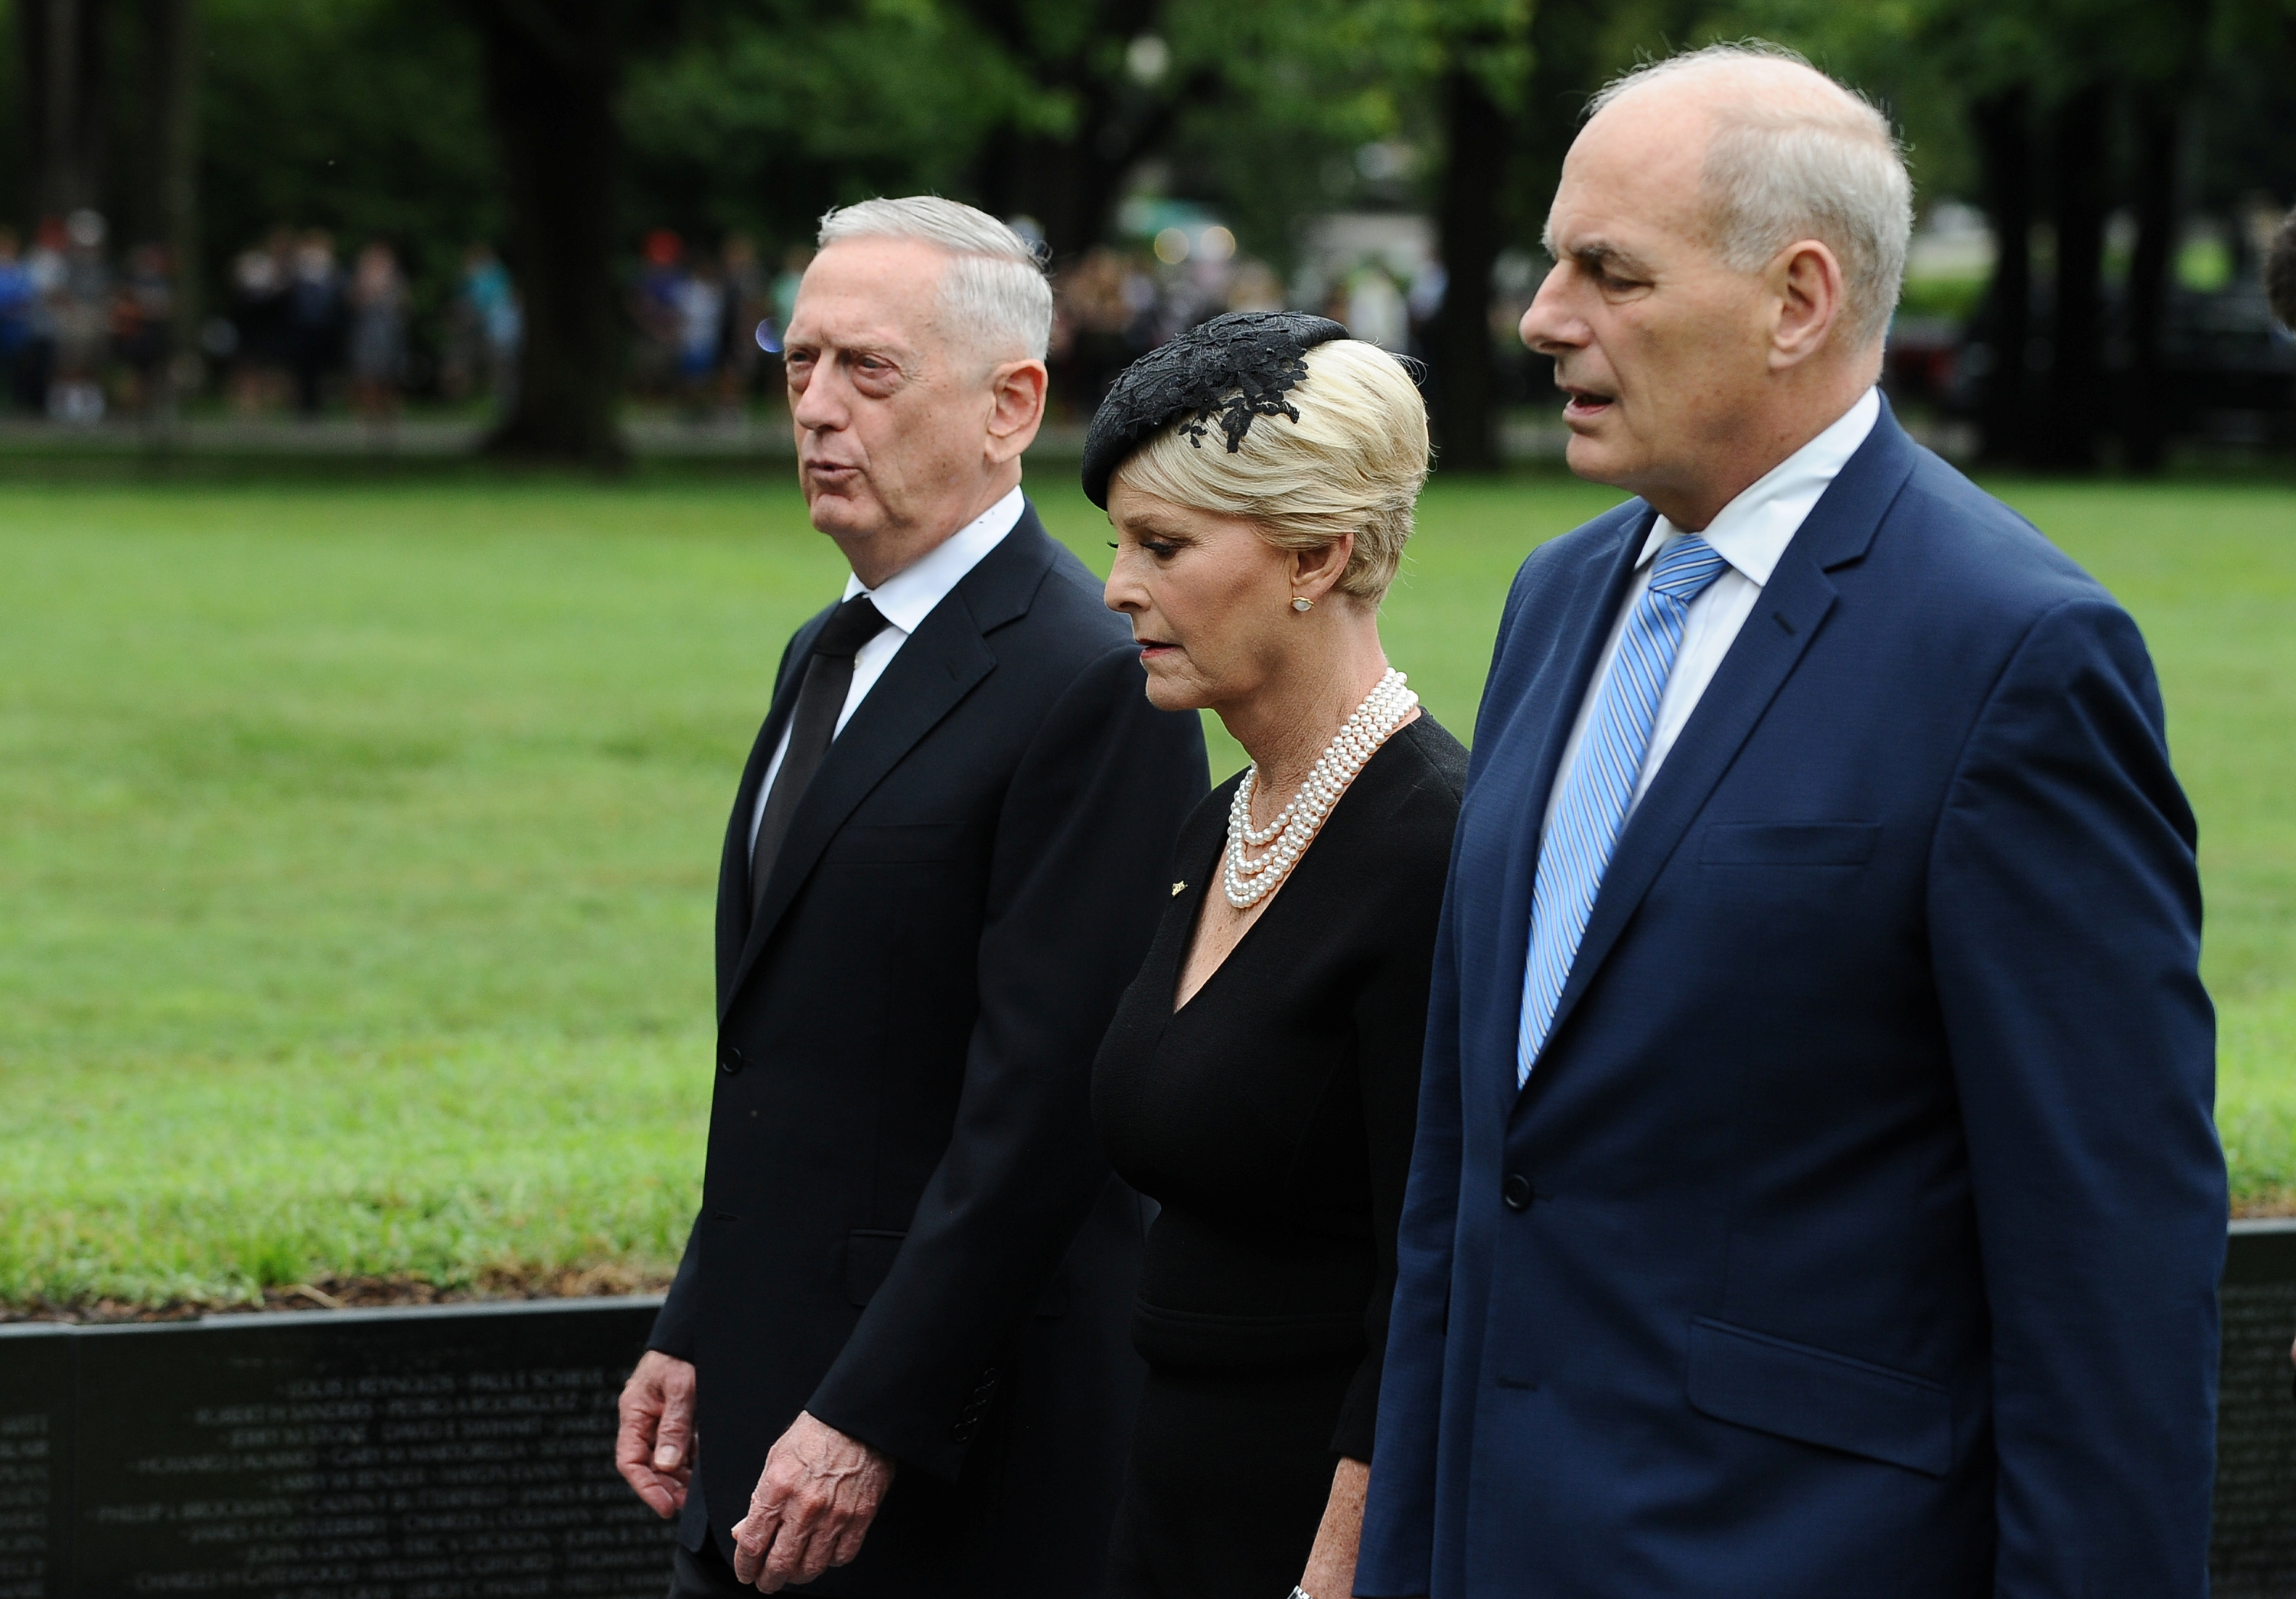 U.S. Secretary of Defense James Mattis, General John Kelly, White House Chief of Staff and Cindy McCain, wife of late Senator John McCain, depart after laying a ceremonial wreath honoring all whose lives were lost during the Vietnam War at the Vietnam Veterans Memorial in Washington, U.S., September 1, 2018. REUTERS/Mary F. Calvert